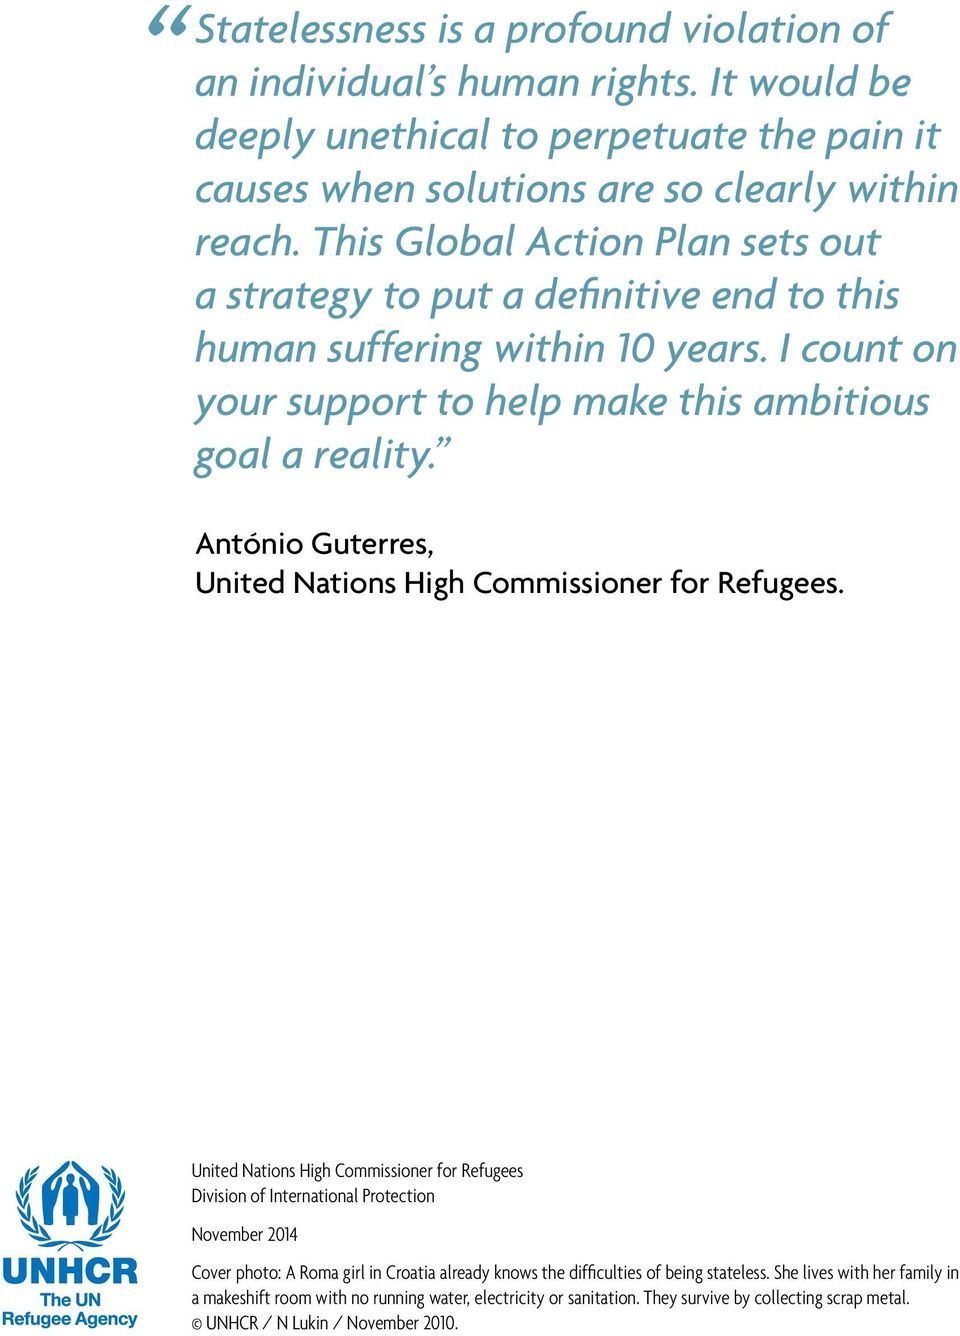 António Guterres, United Nations High Commissioner for Refugees.